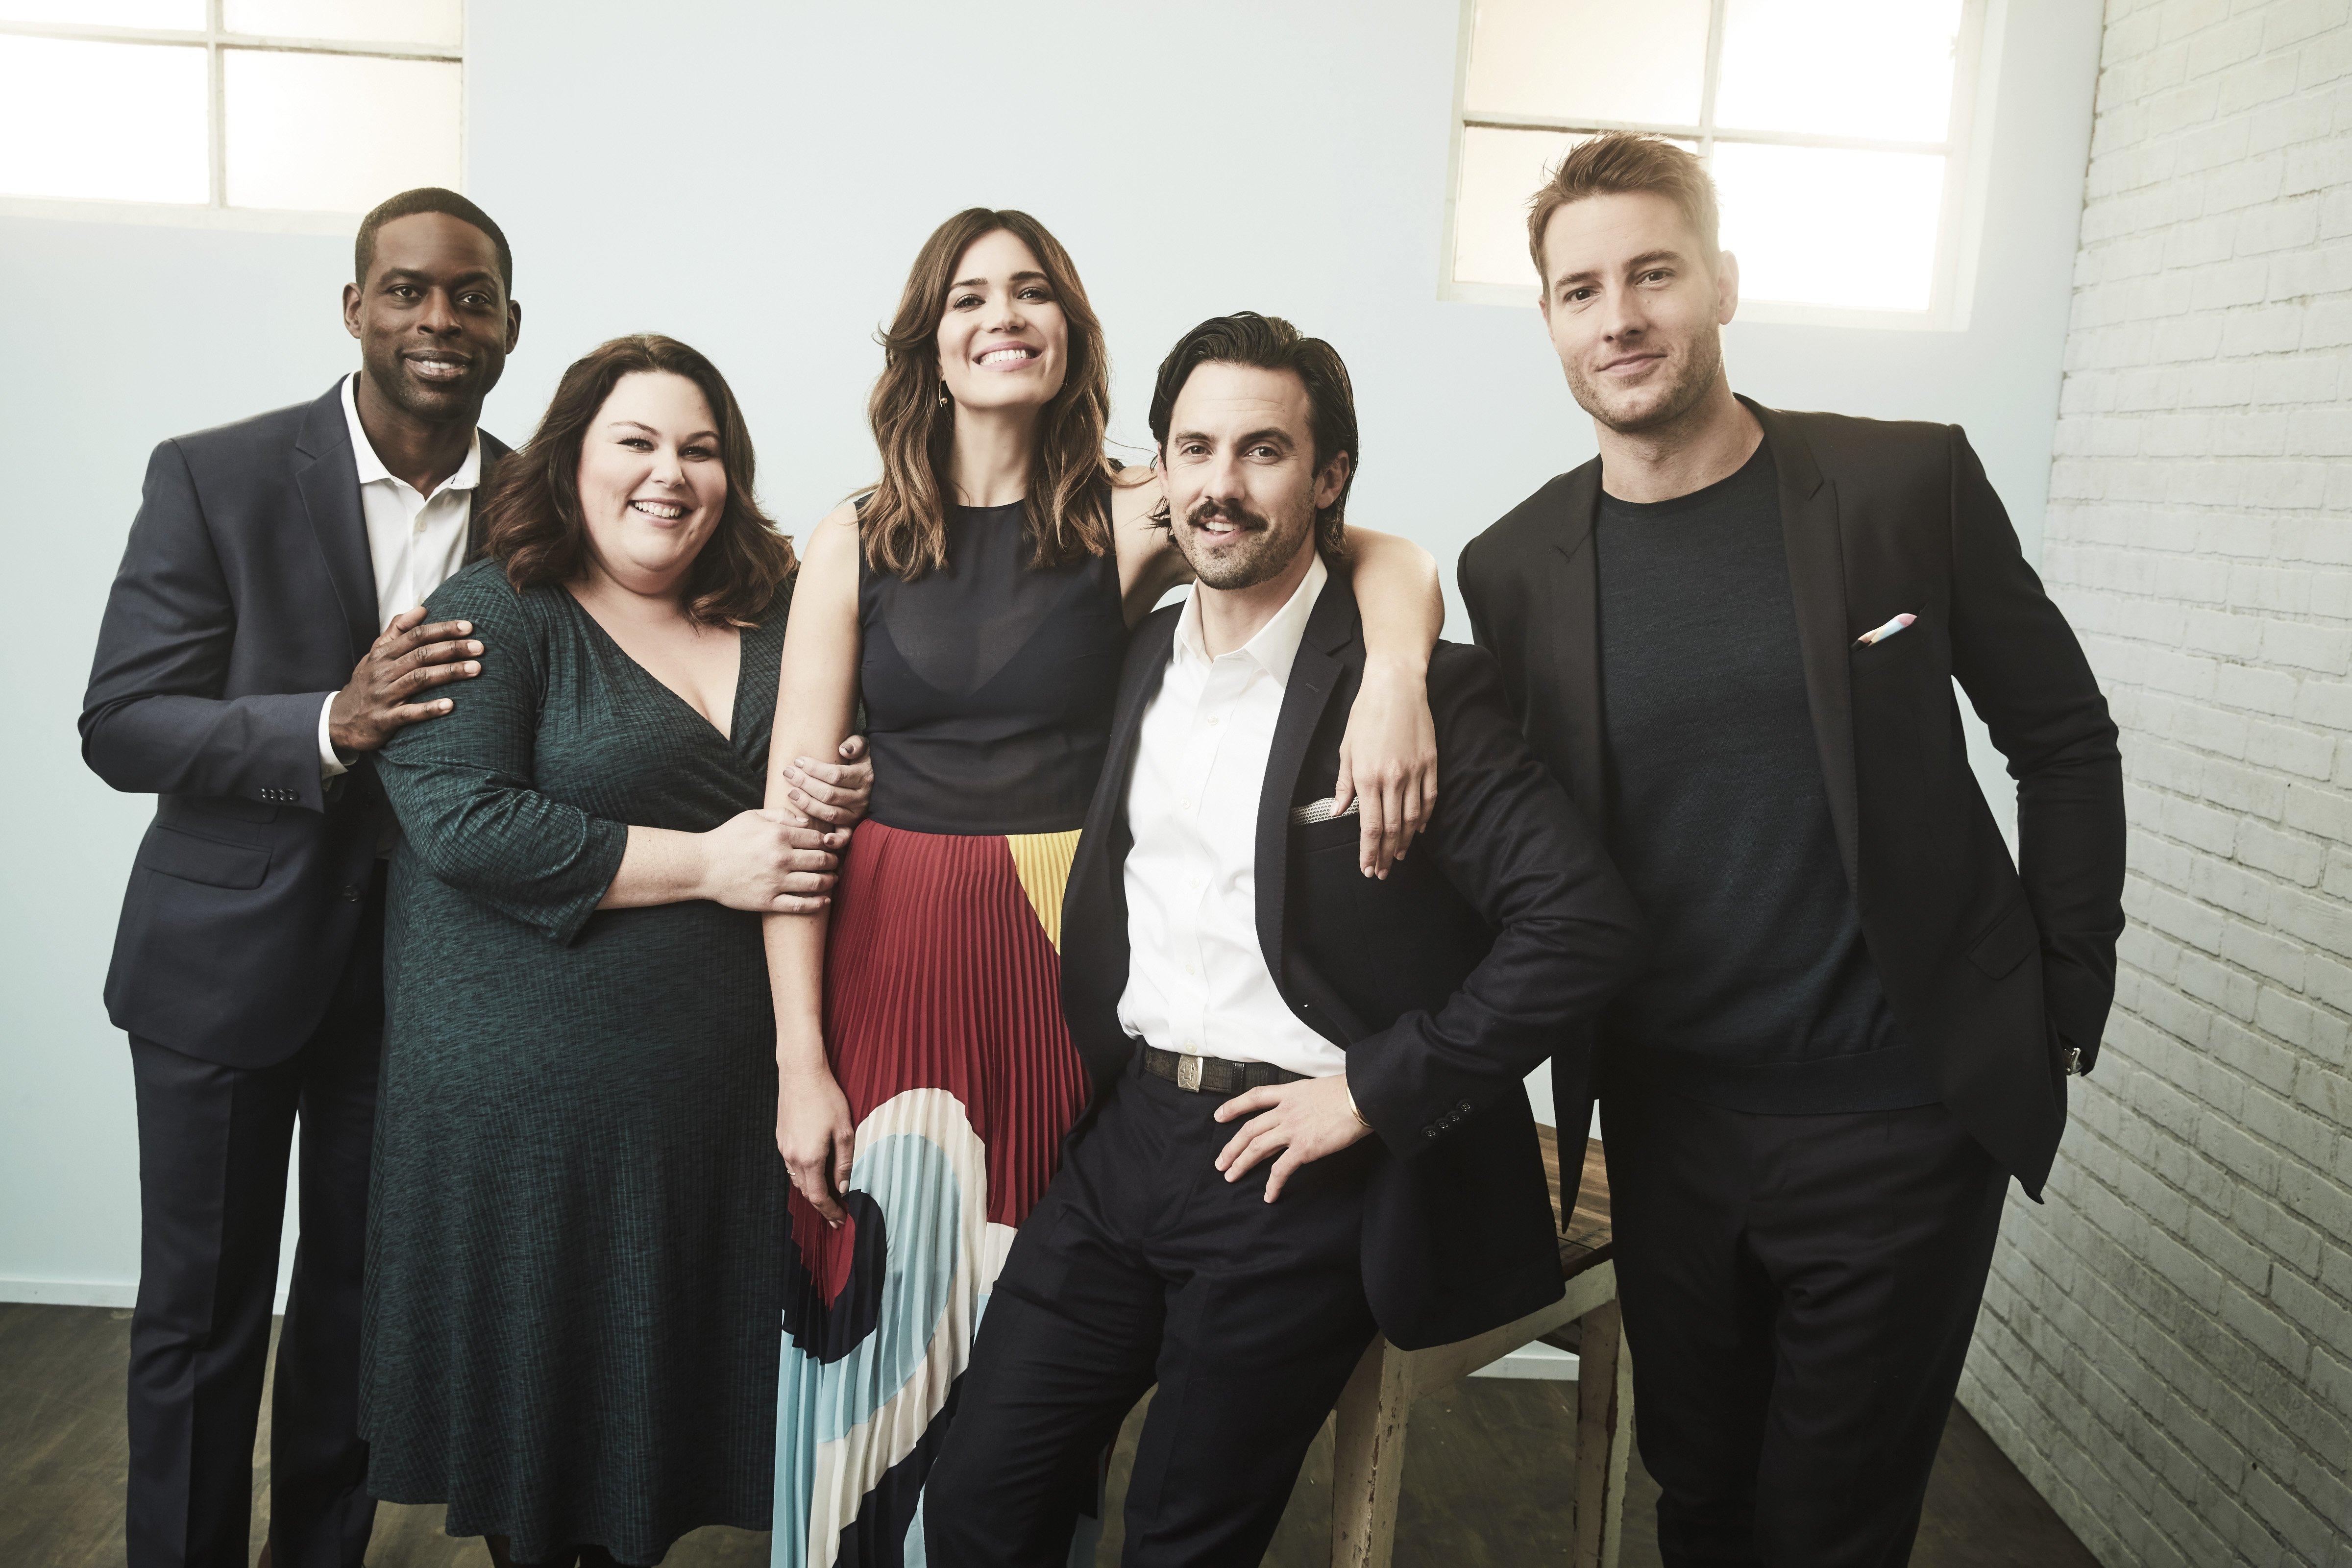 """The cast of the """"This Is Us"""" series pose during NBC Universal Press Tour in Pasadena, California on January 18, 2017 